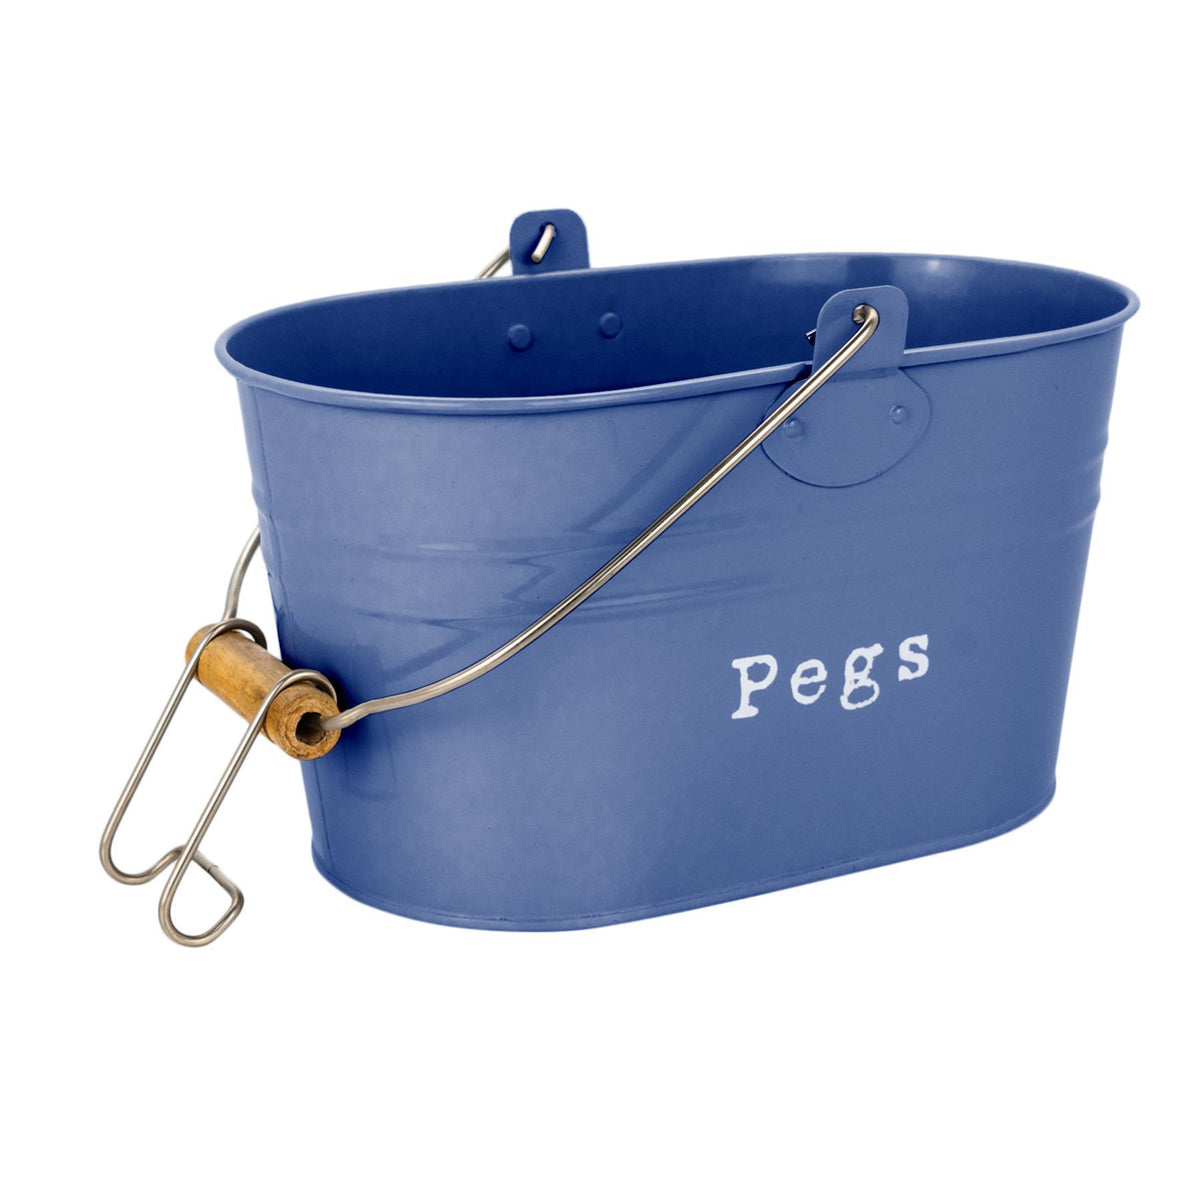 Harbour Housewares Vintage Metal Clothes Peg Bucket - Grey